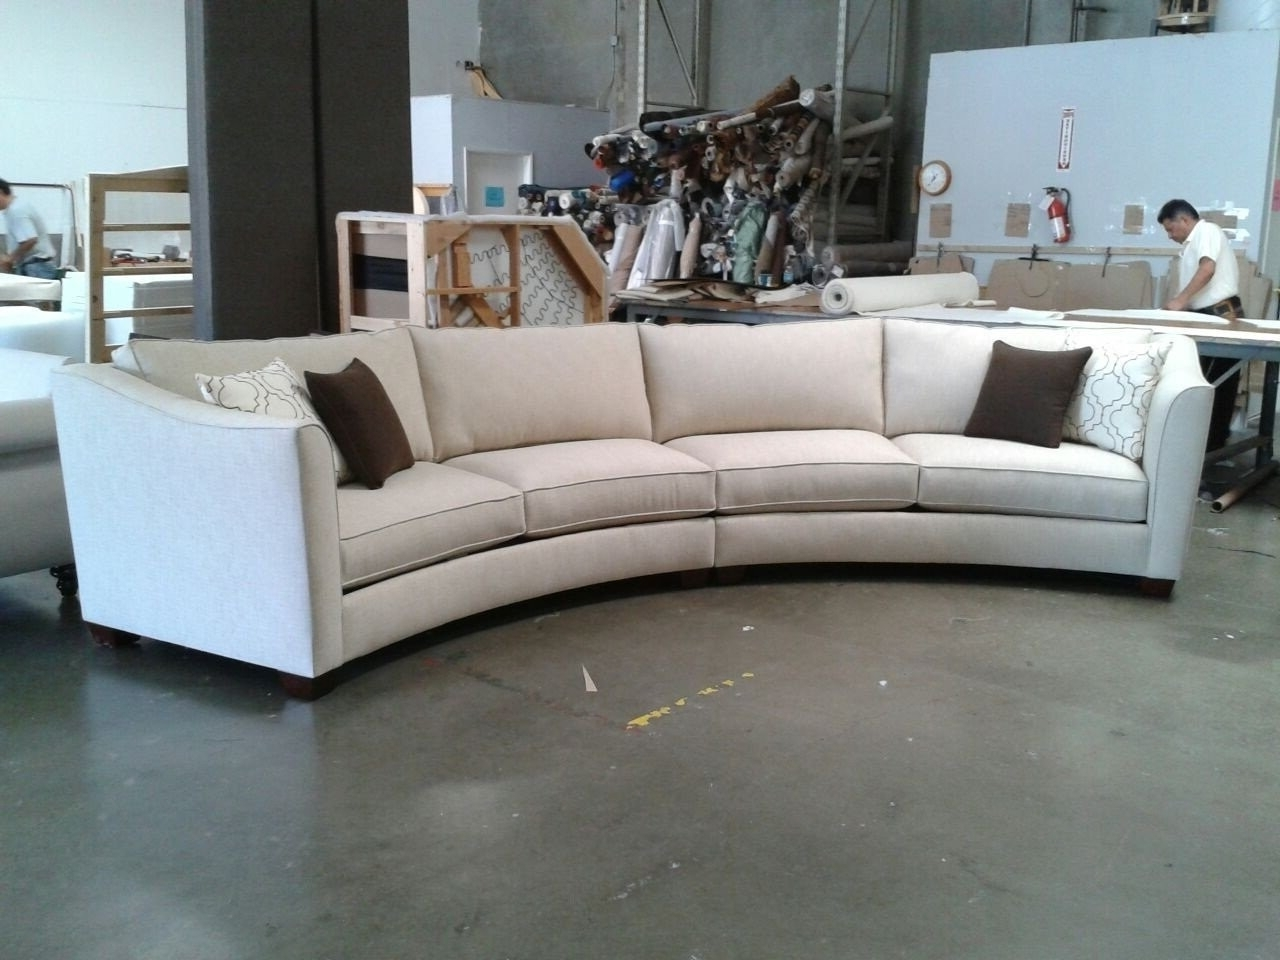 Preferred Luxury Curved Sectional Sofa Sale - Mediasupload in Circular Sectional Sofas